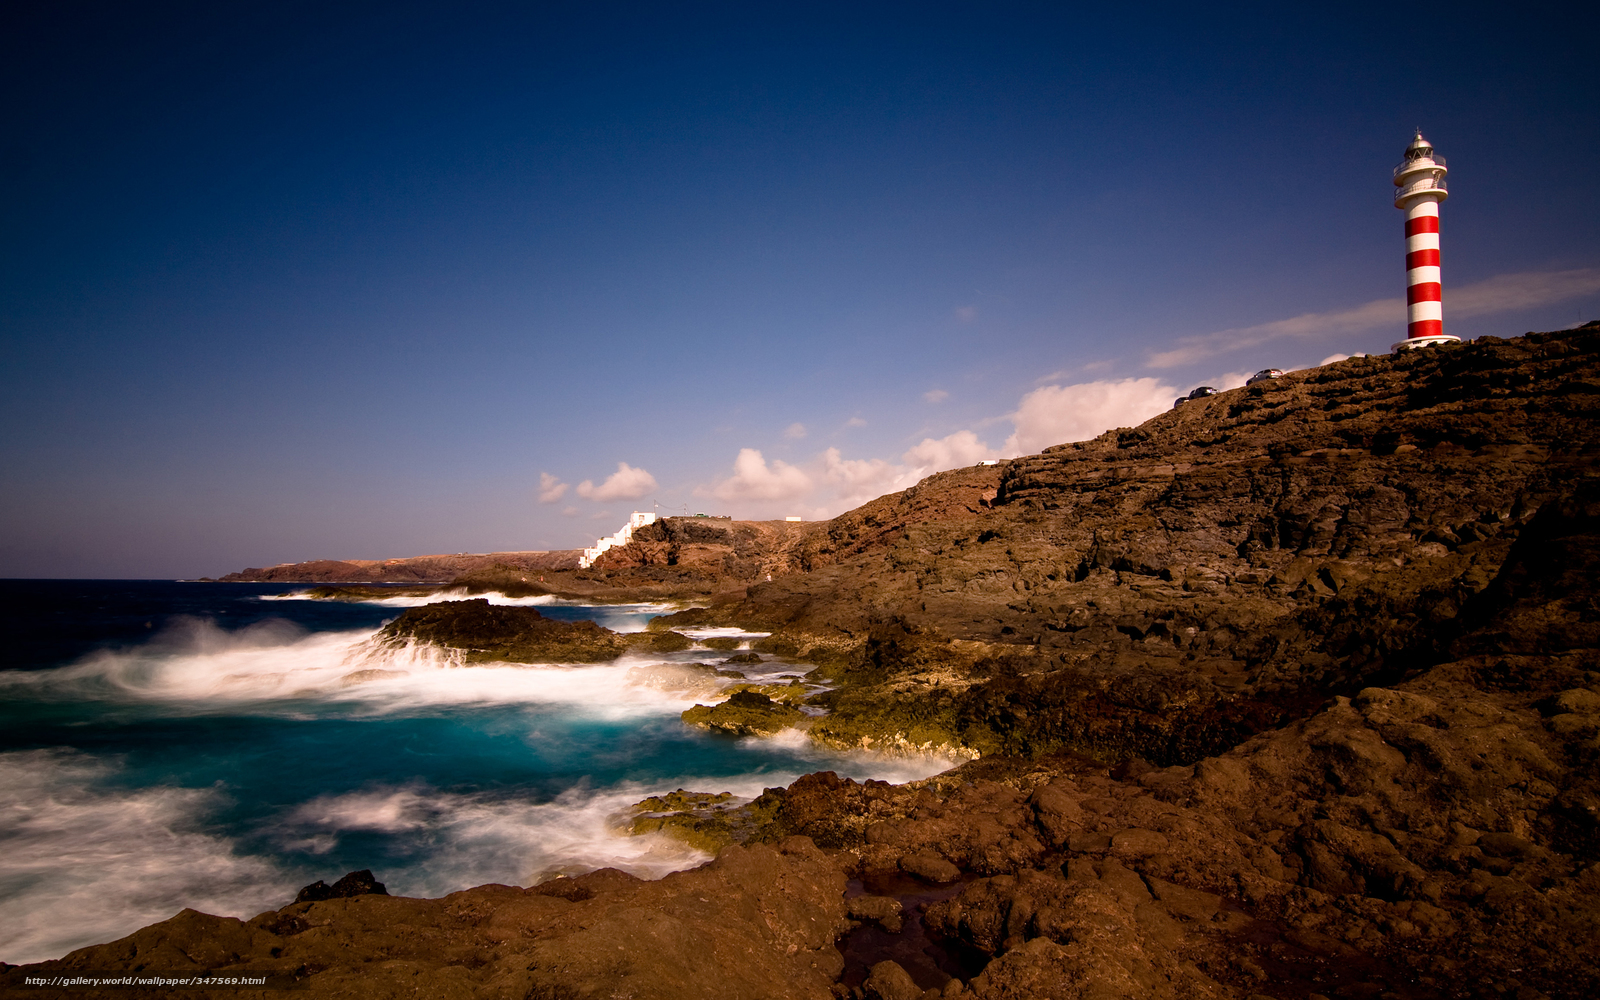 Download wallpaper gran canaria, canary islands, The Canary